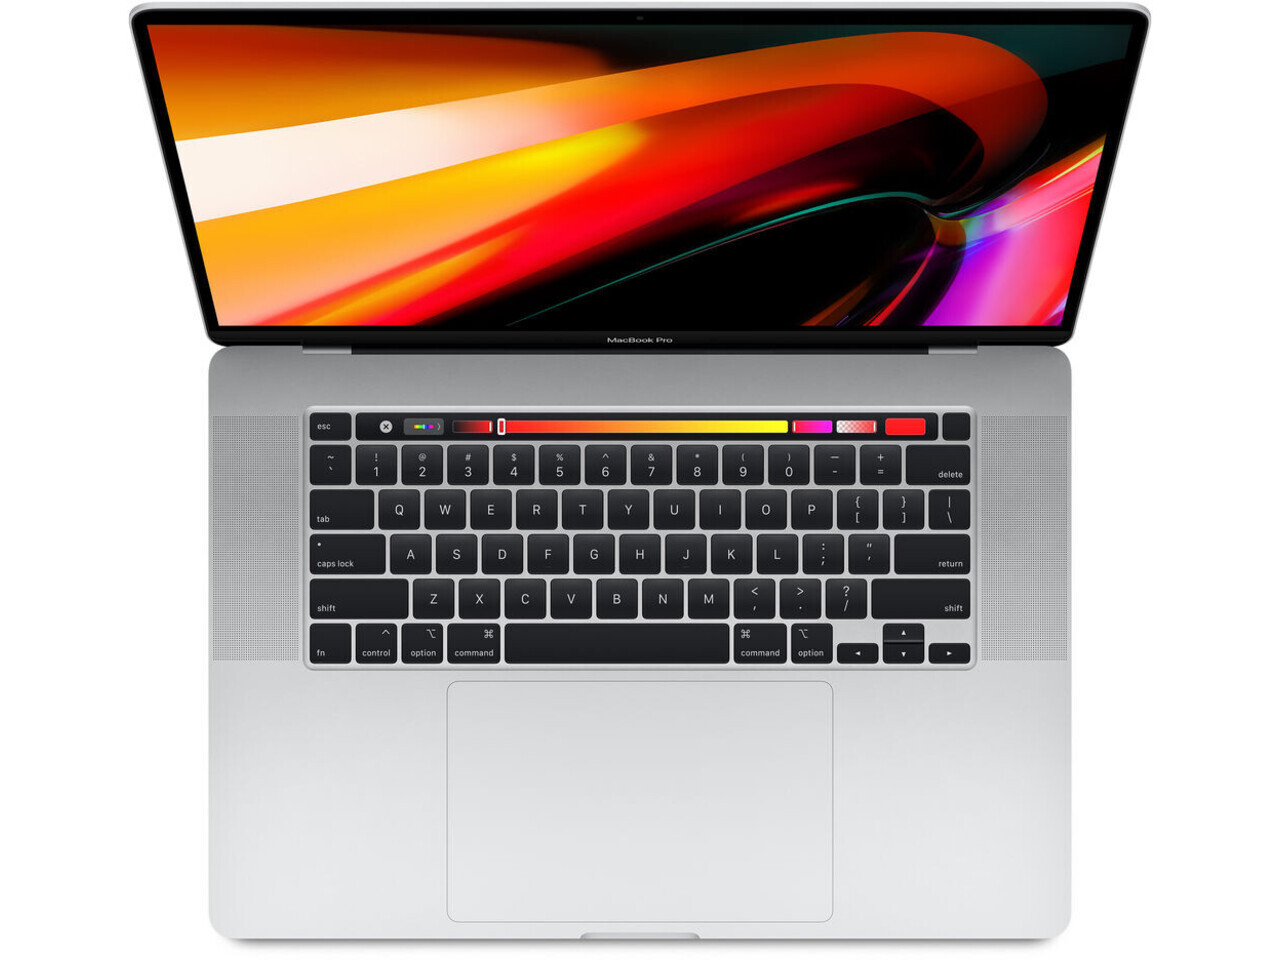 macbook pro 16 inch touch bar 2019 silver